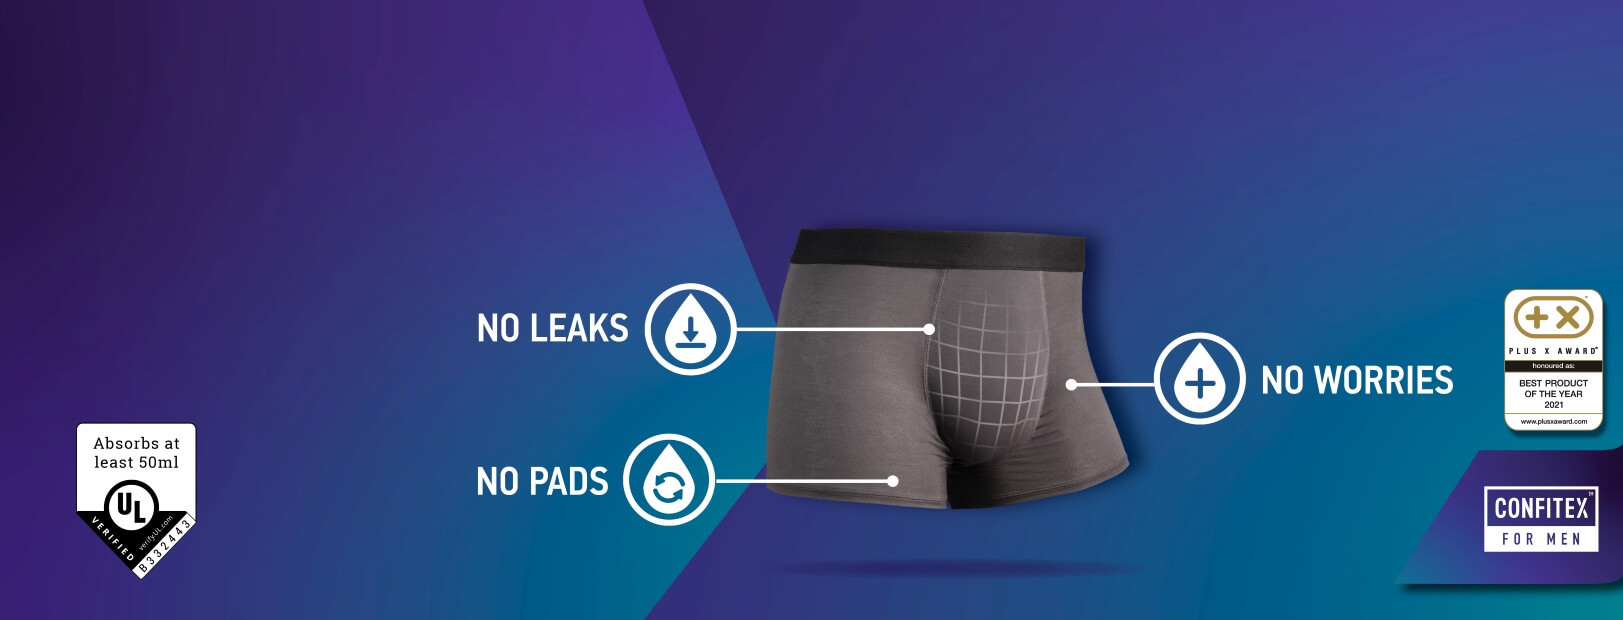 Infographic showing benefits of Confitex for Men absorbent underwear